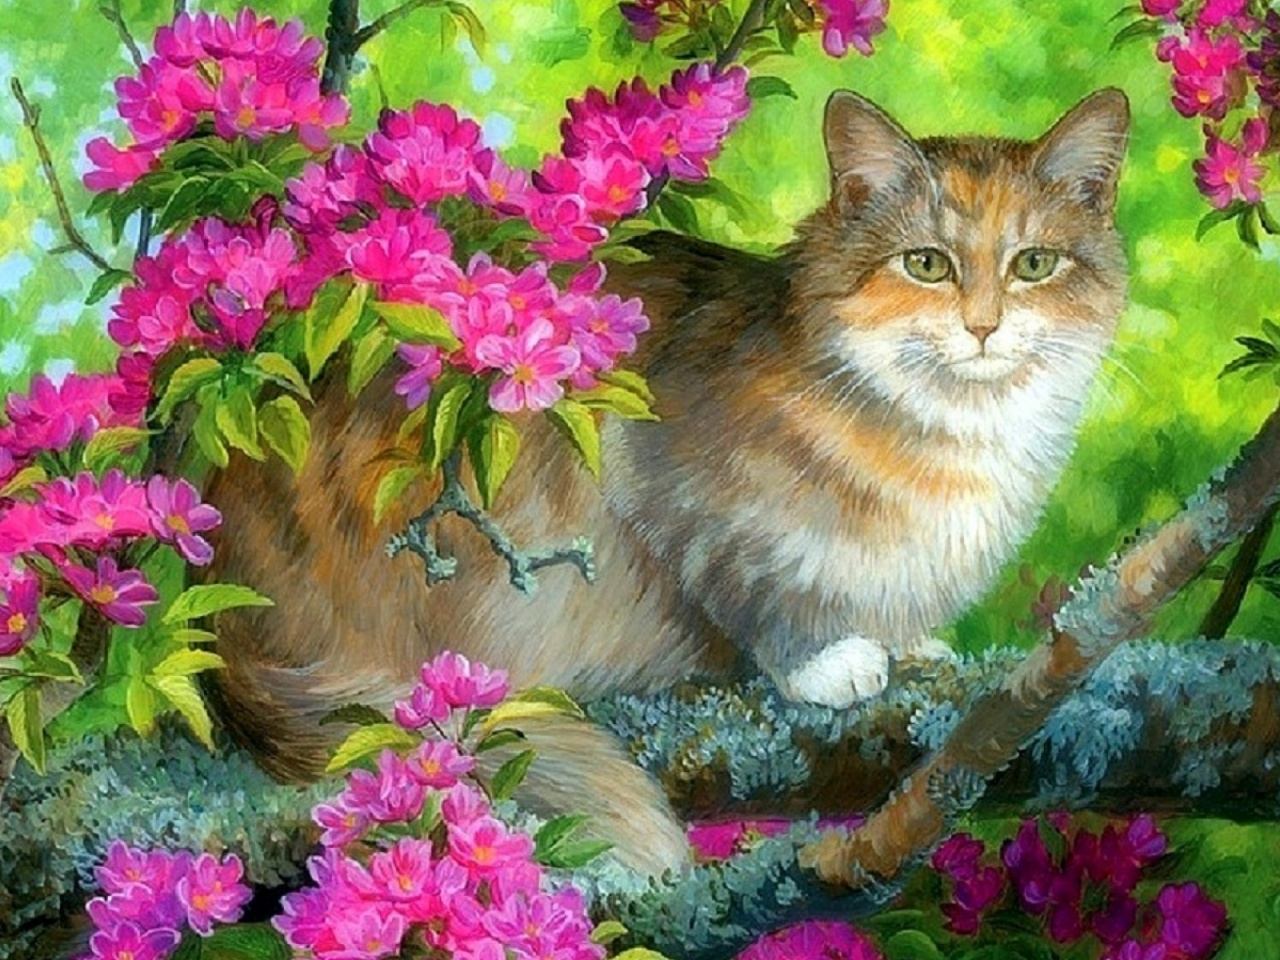 Cute Kitty Wallpapers Download 1280x720 Cute Kitty Boughs Pink Flowers Vimeo Cover Image